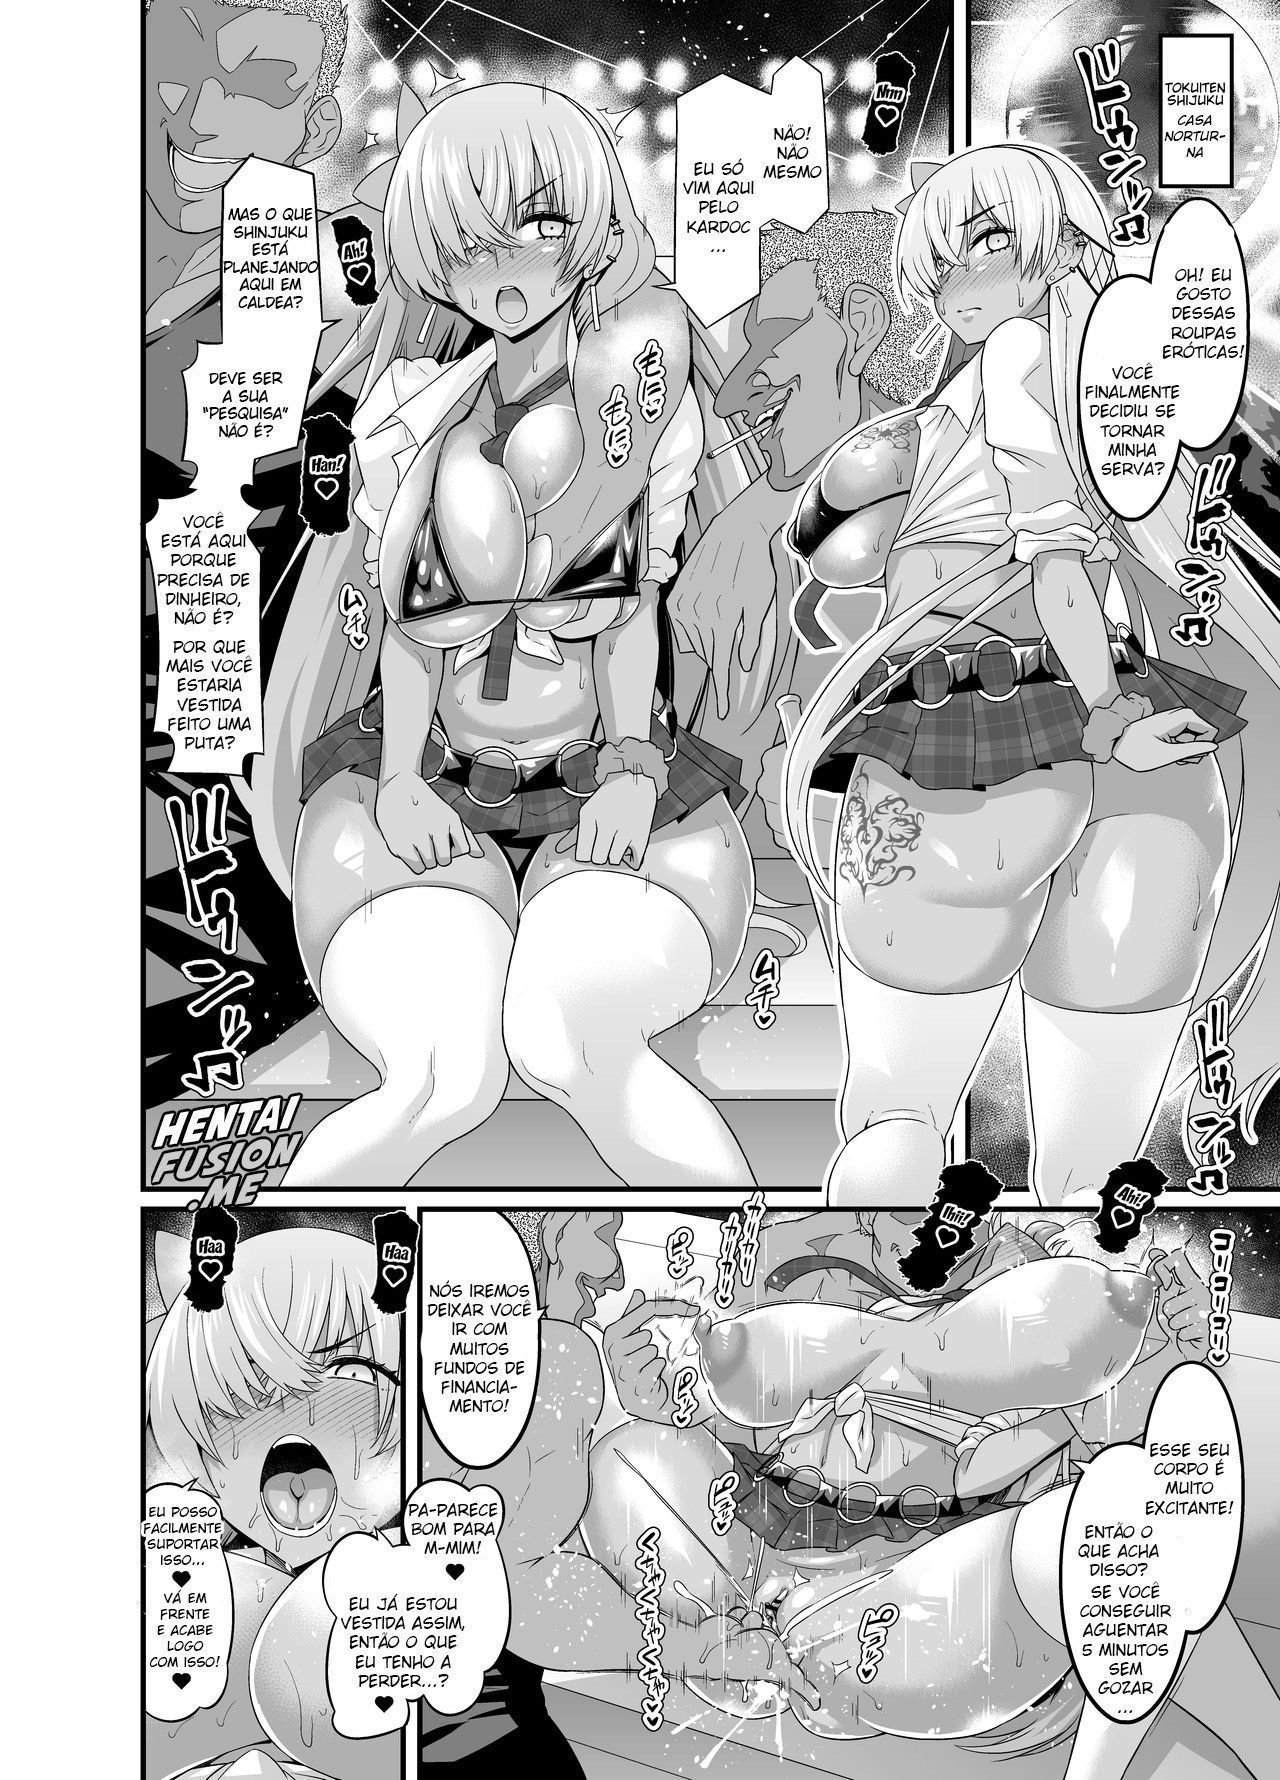 Anastasia Becomes a Gyaru At a Sleazy Guyhtml5-dom-document-internal-entity2-039-ends Suggestion - Hentai Fusion